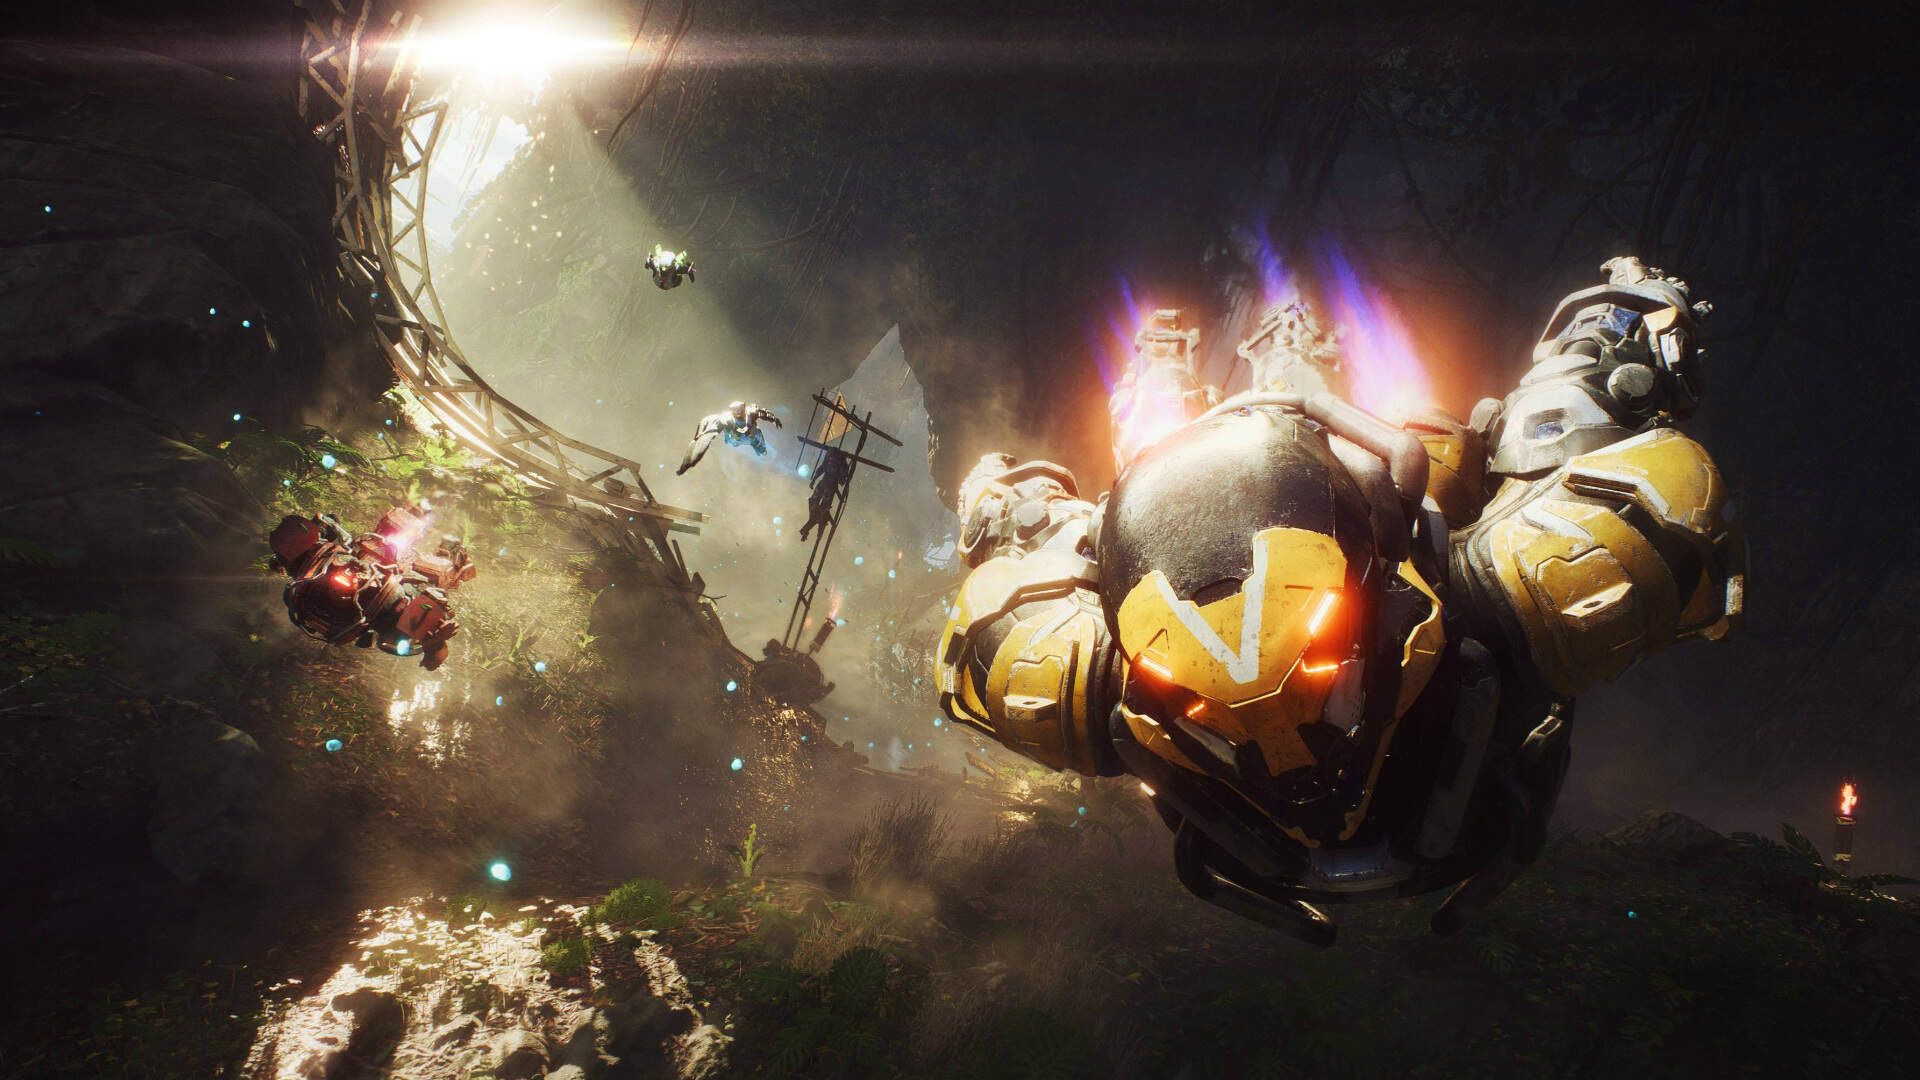 Axe of the Blood God Reviews Anthem, Wonders About BioWare's Future, and Says Farewell to Reggie